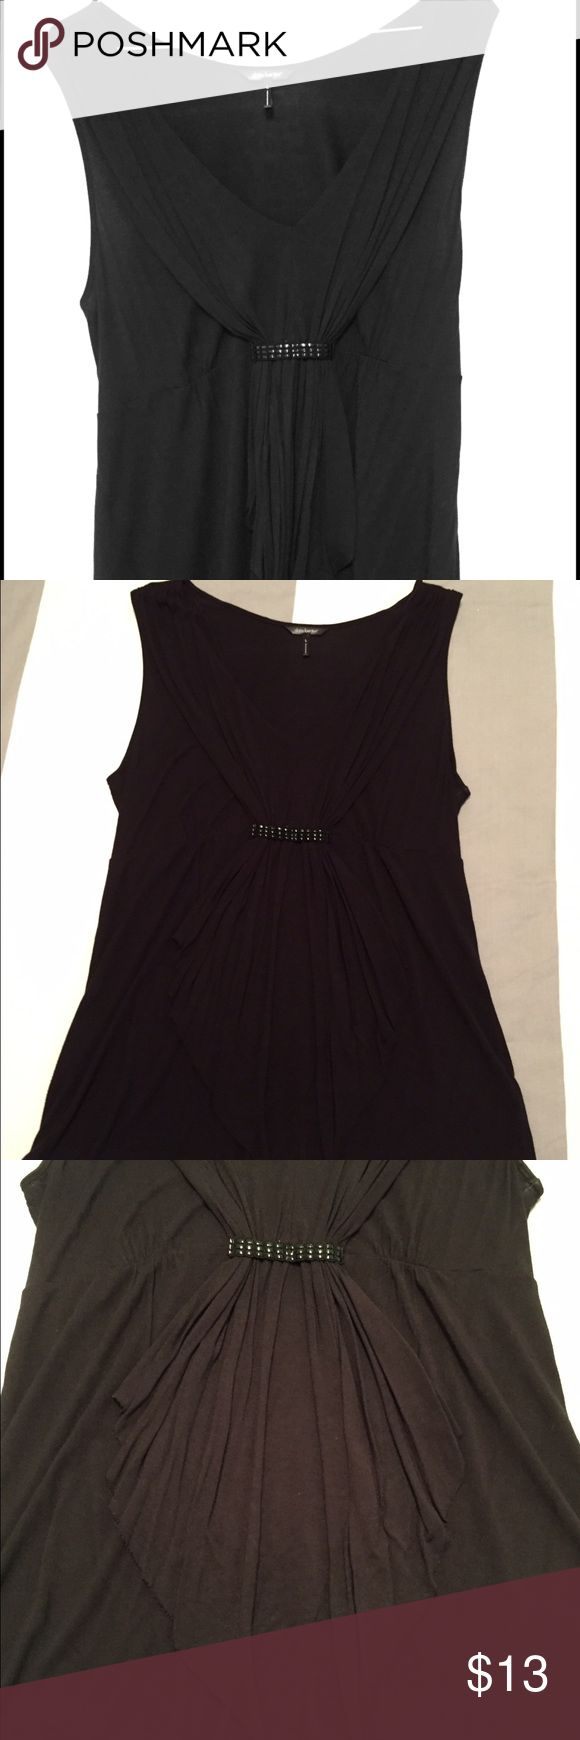 Daisy Fuentes Sleeveless Shirt Daisy Fuentes black sleeveless shirt with gathered handkerchief hem in front. Material is 100% rayon. Shirt is gently worn. Daisy Fuentes Tops